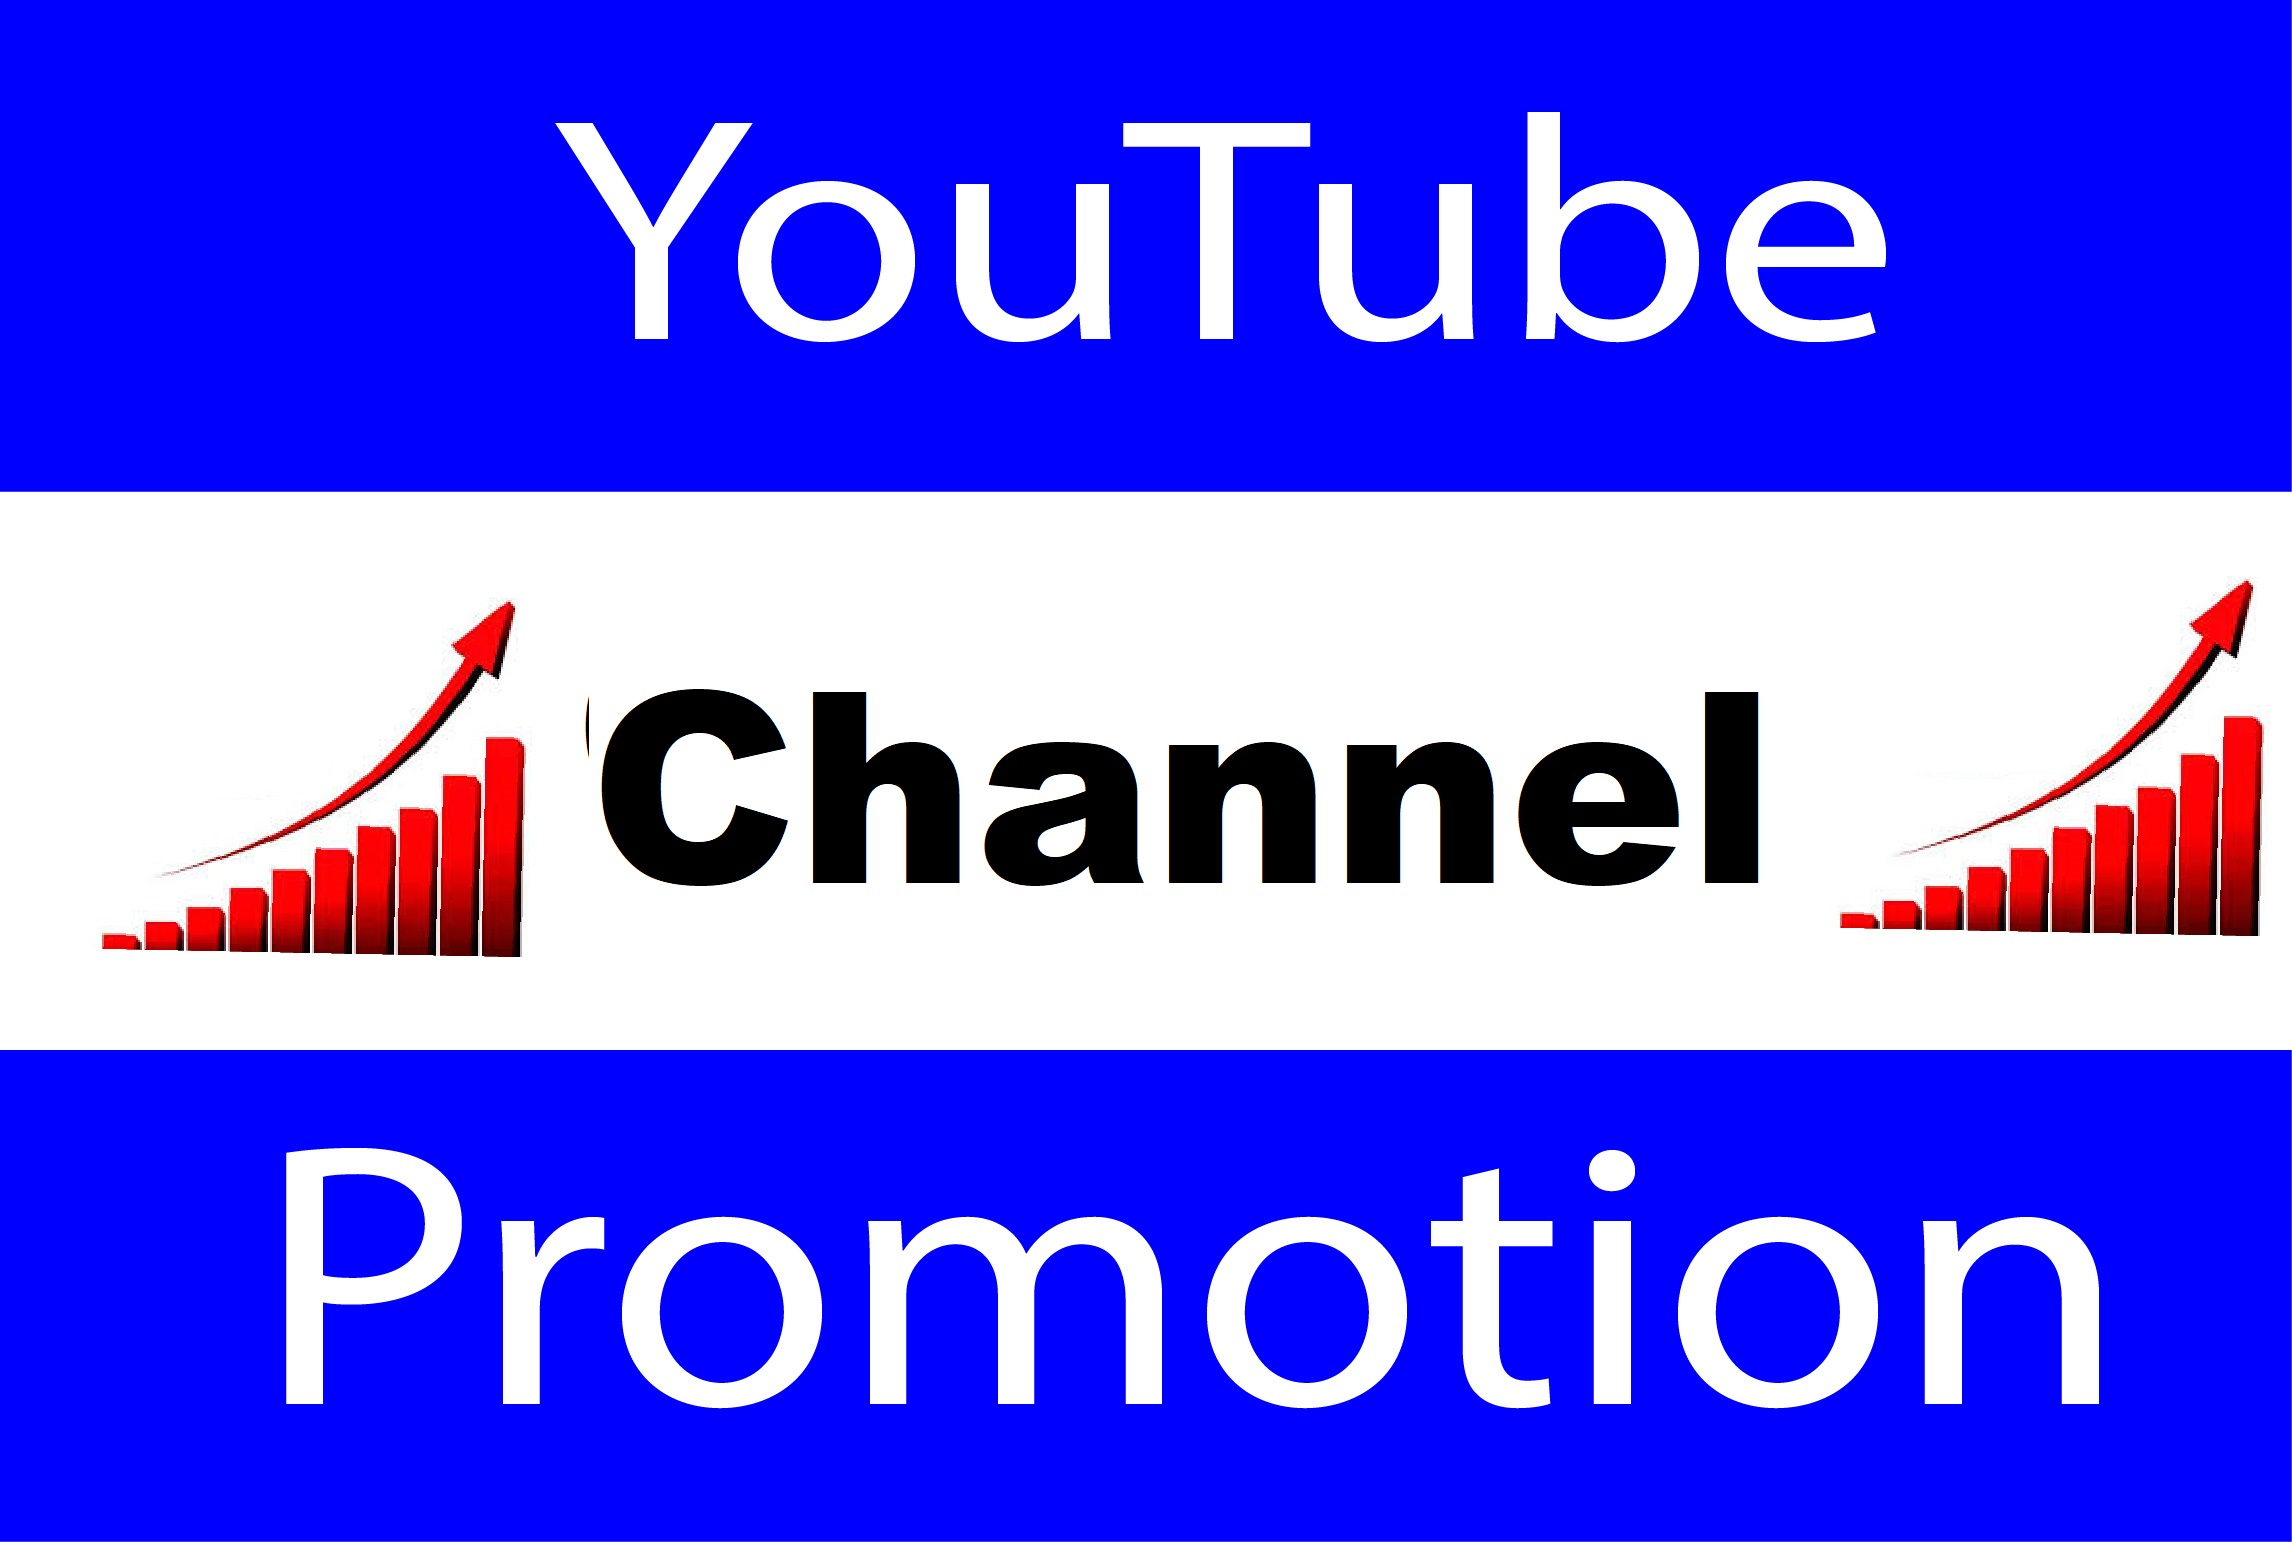 YouTube Account Promotion and Social Media Marketing